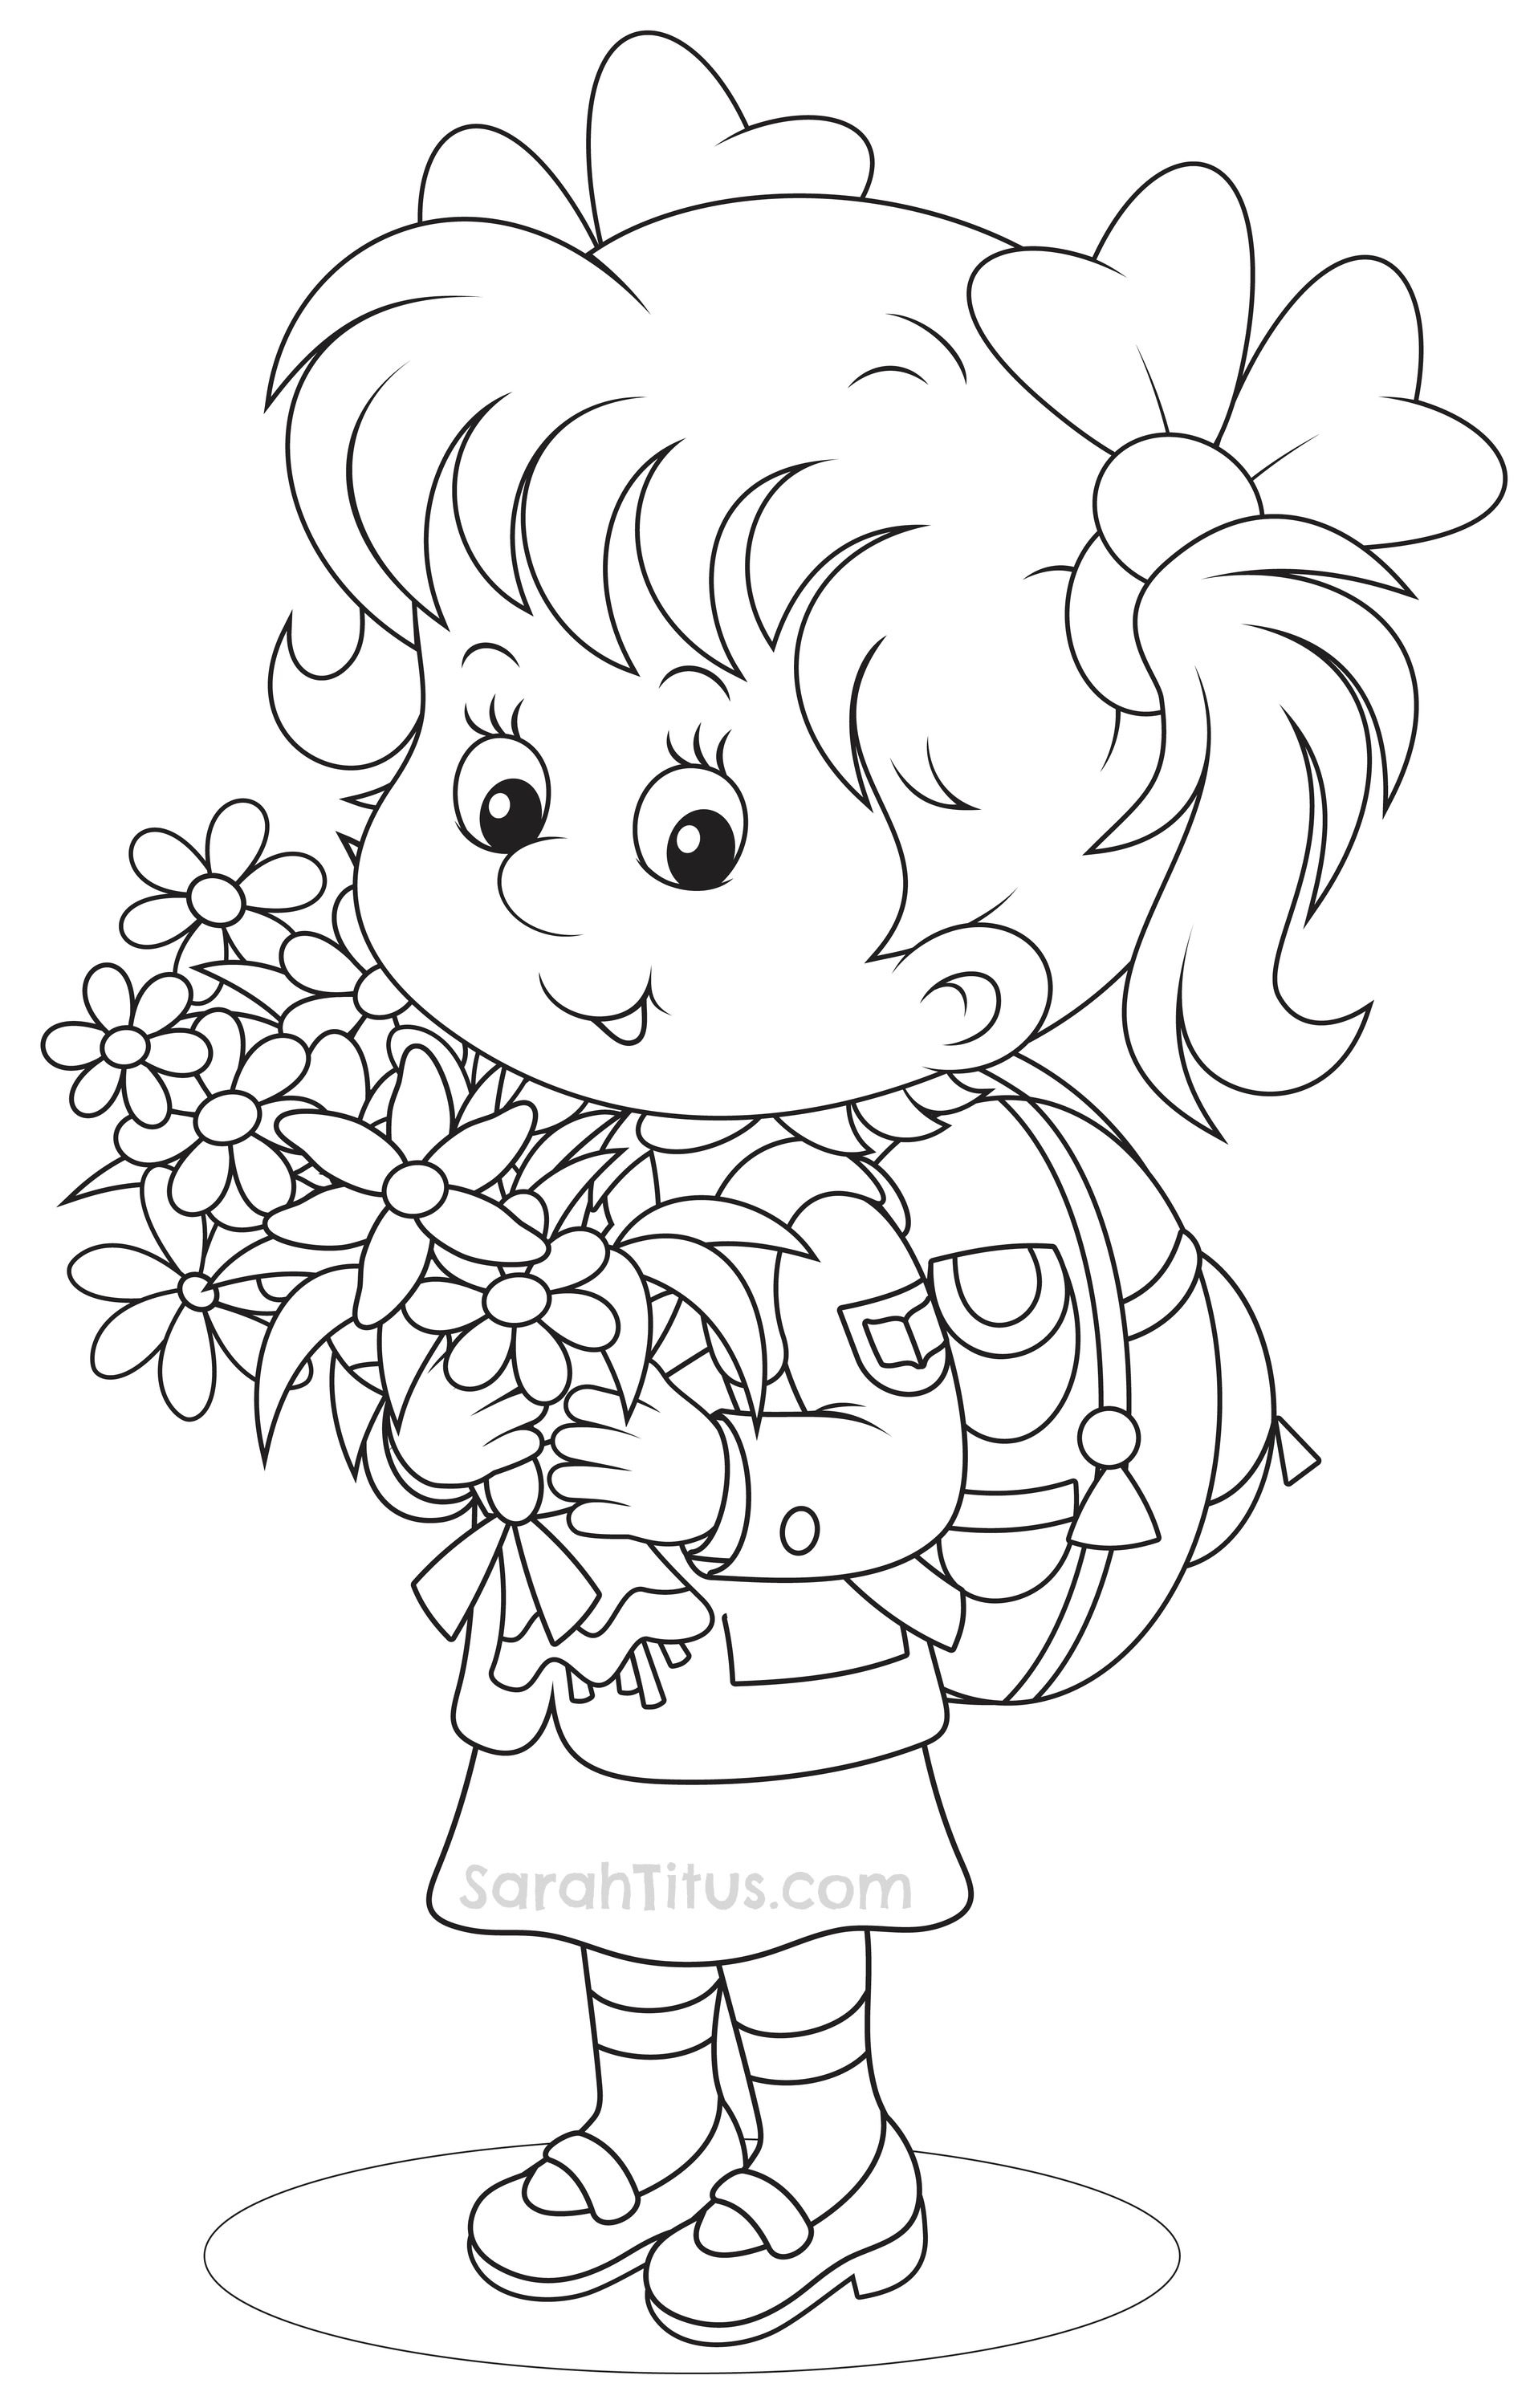 Coloring pages for back to school - Back To School Coloring Pages Sarahtitus Com